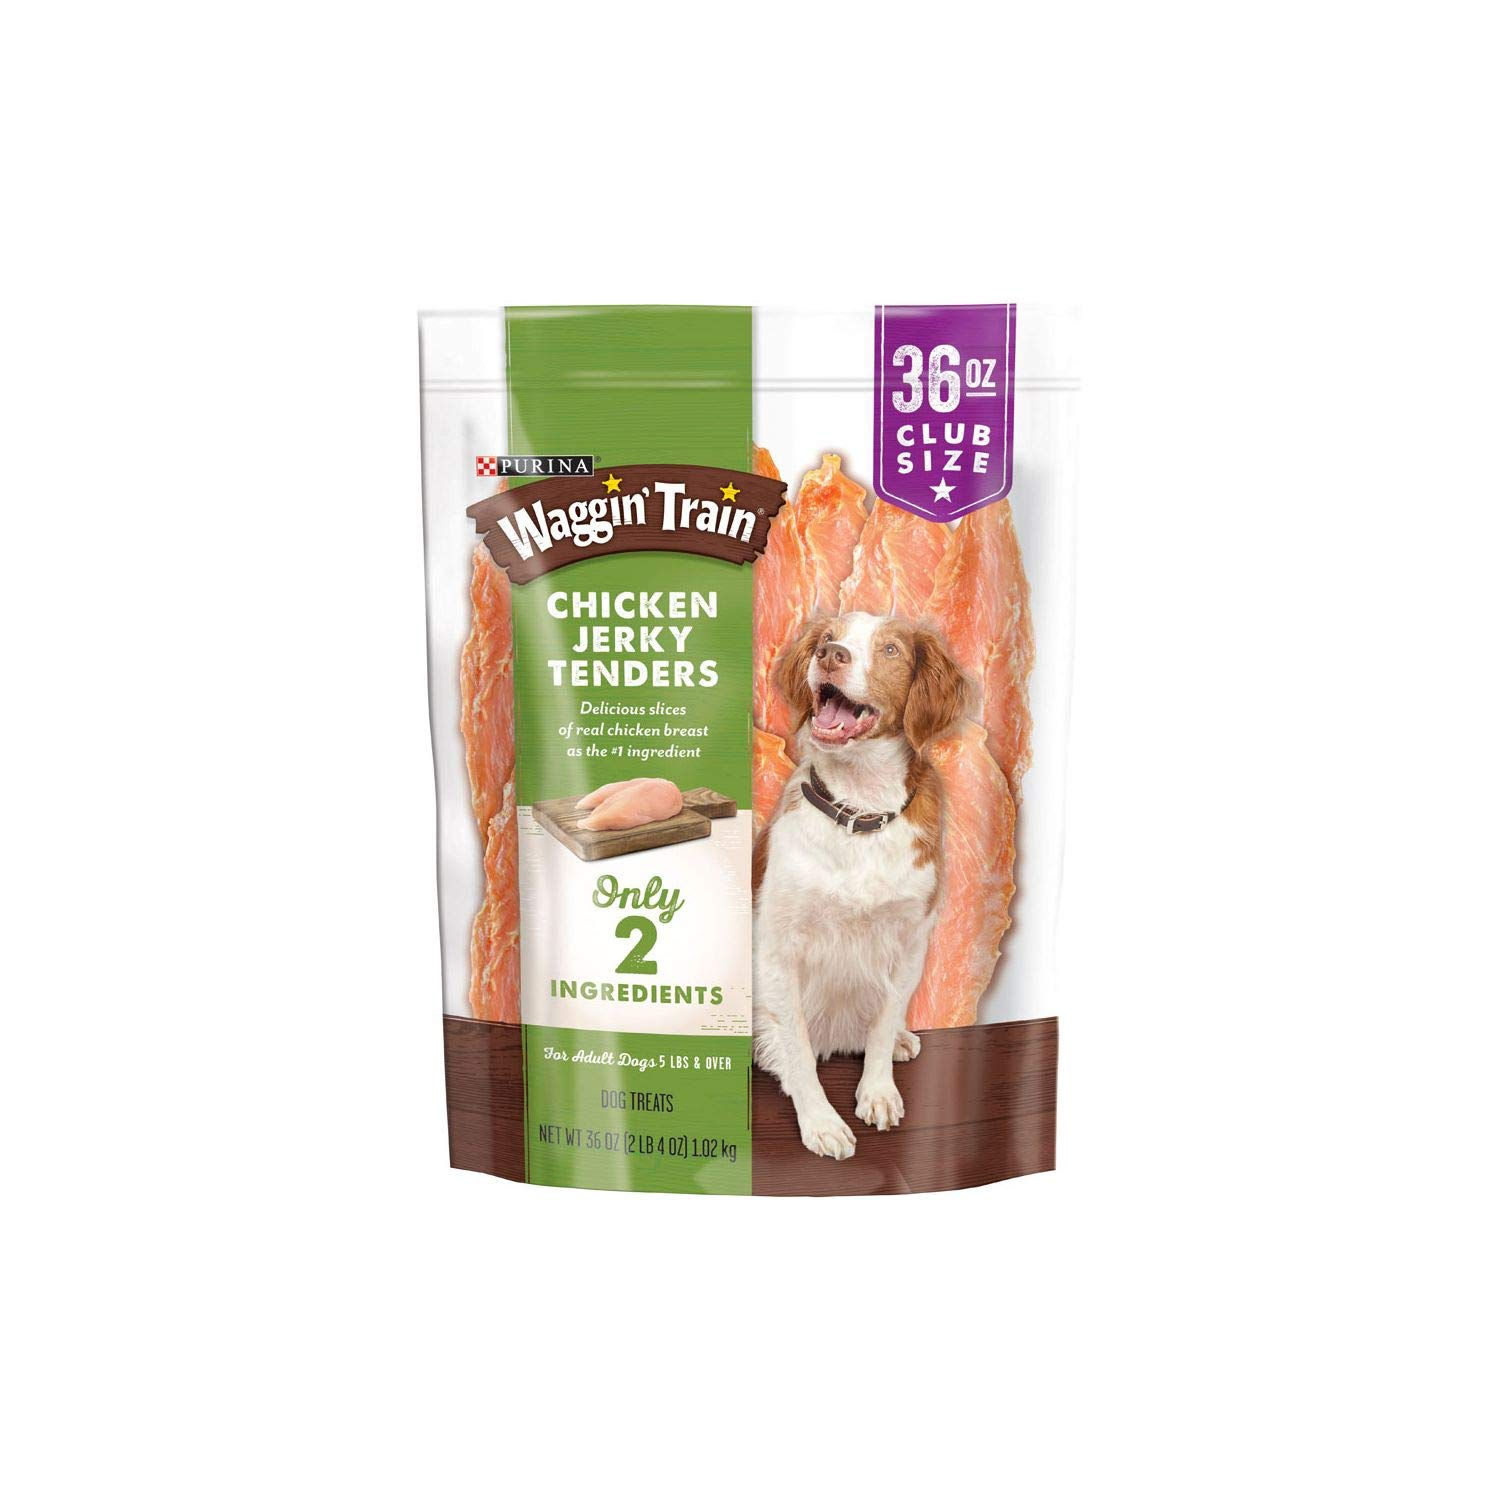 Pawstruck 12 Straight Skinny Bully Sticks for Dogs or Puppies All Natural Odorless Bully Bones Grass-Fed Beef Small Thickness Dog Chew Dental Pizzle Treats Best Thin Steer Bullie Stix